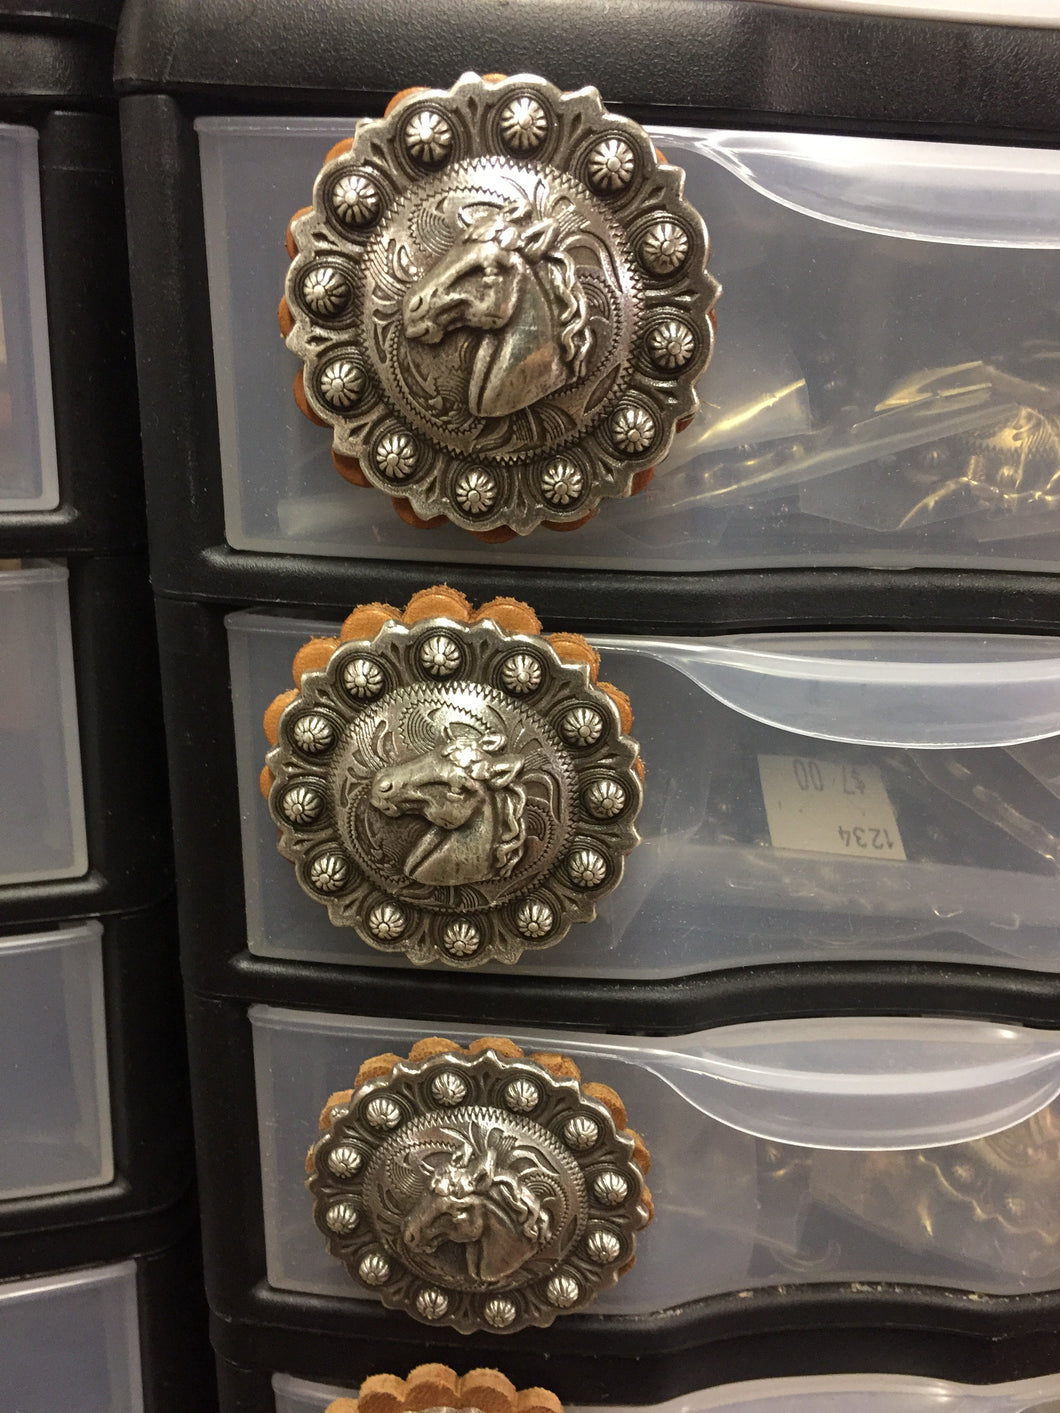 Anchor Brand - T.M. - Buckles and Conchos - Pic 32 Drawer 1